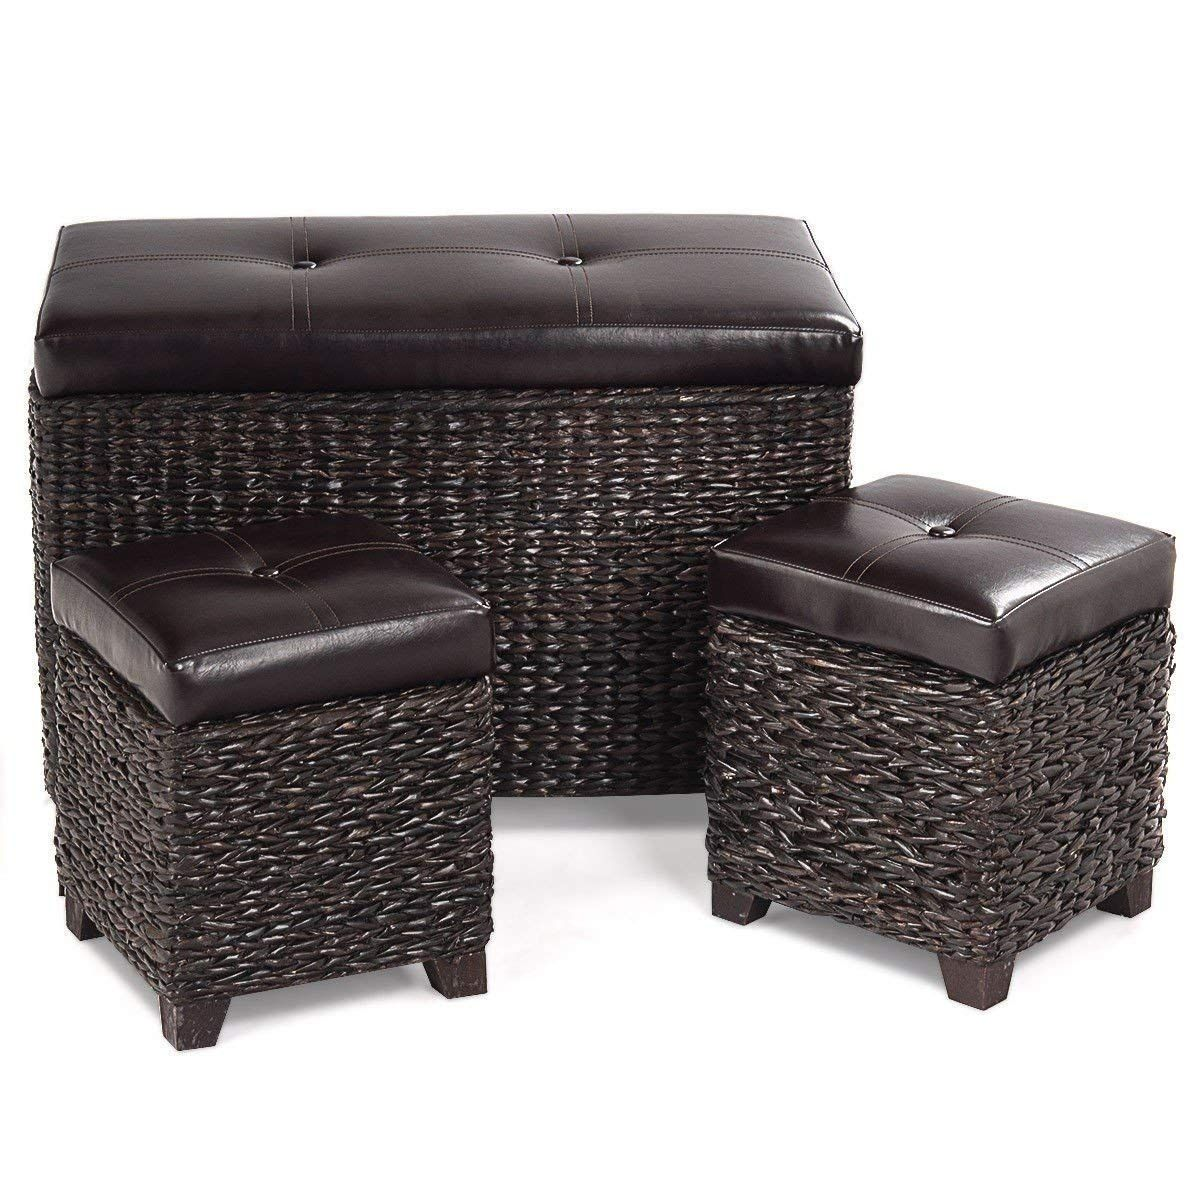 Beuniquetoday 3 Pcs Rattan Seating Storage Bench Hassocks Leather Ottoman Stools Home Set Bedside Box Multi Usage Leather Ottoman Rattan Ottoman Ottoman Set